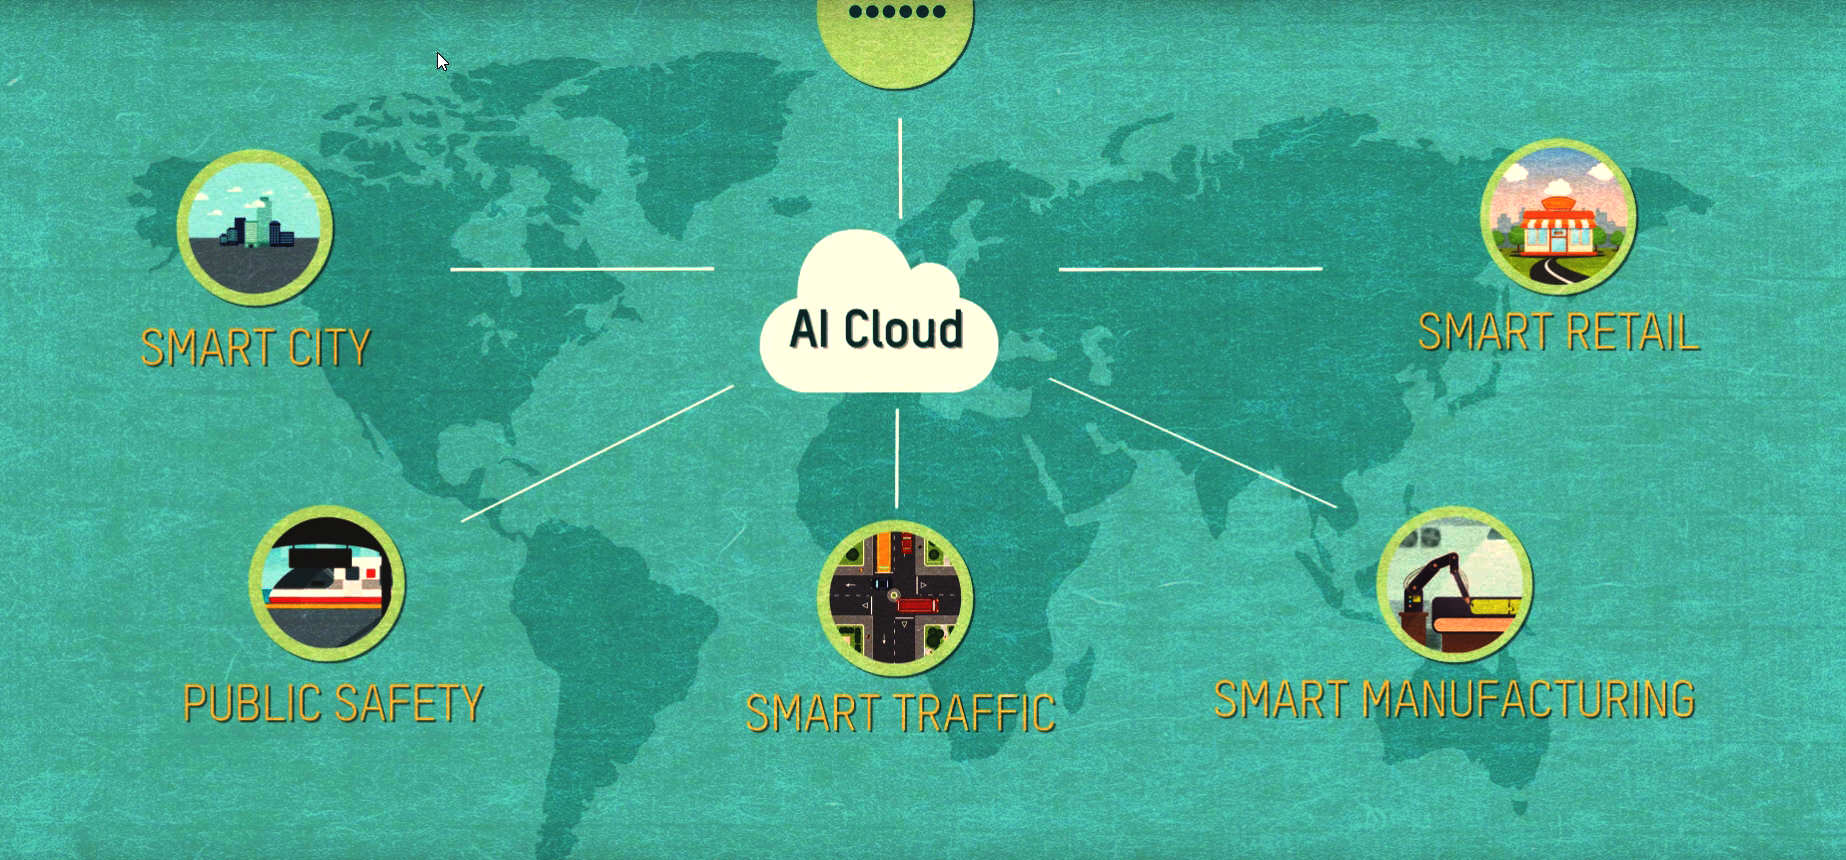 Hikvision AI Cloud as an intelligent IoT architecture | Touch CCTV